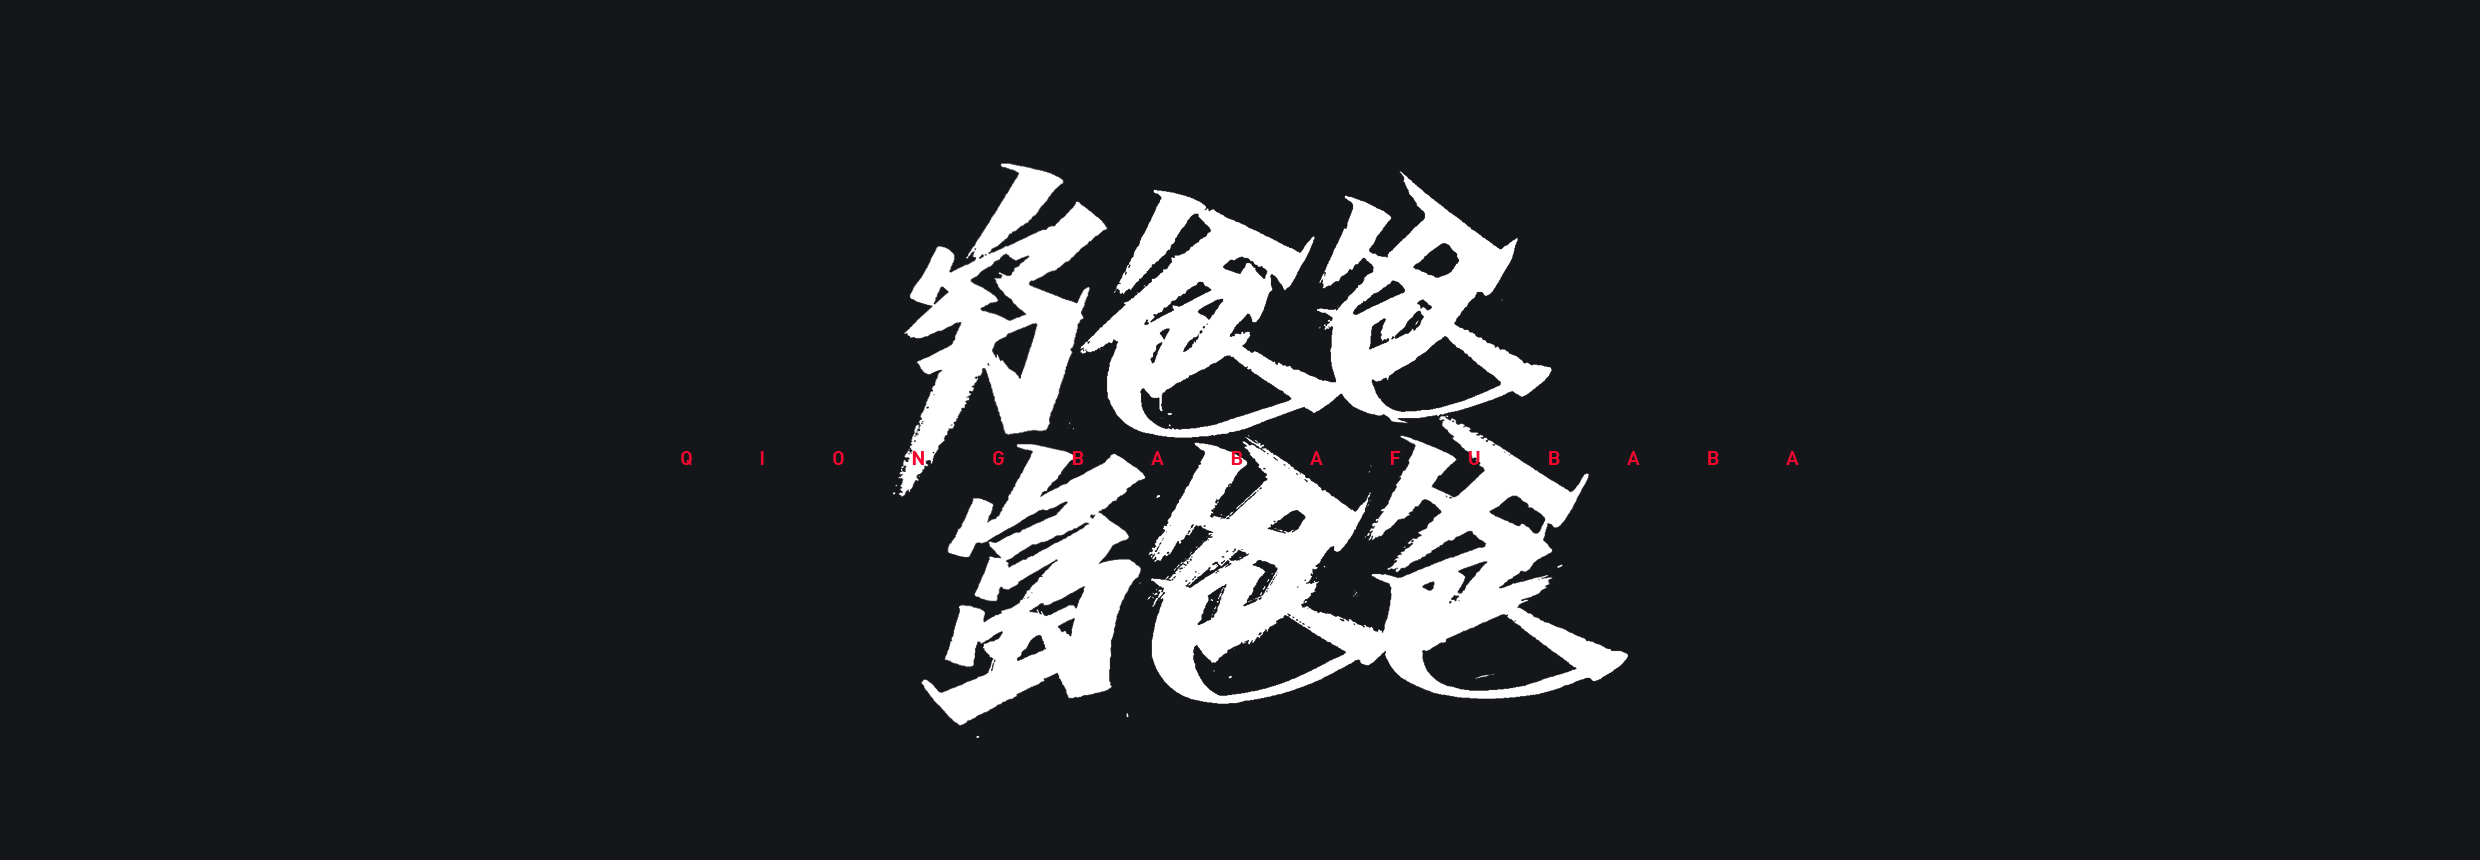 Interesting Chinese Creative Font Design-Inspirational quotes